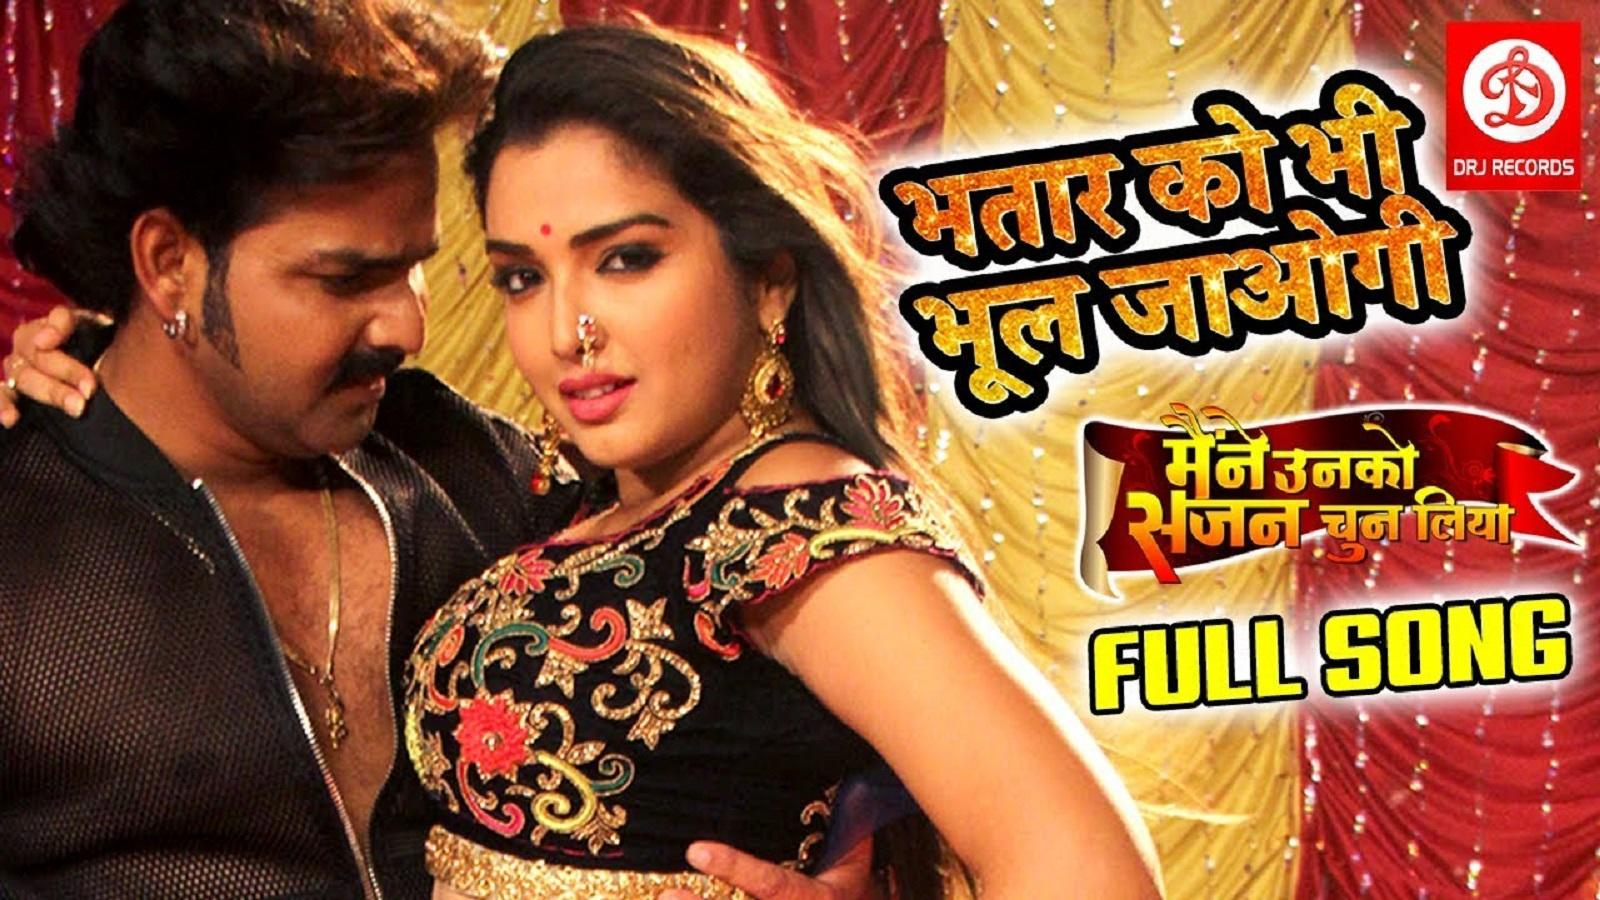 Latest Bhojpuri song 'Bhatar Ko Bhi Bhul Jaogi' Ft  Pawan Singh and  Amarpali Dubey